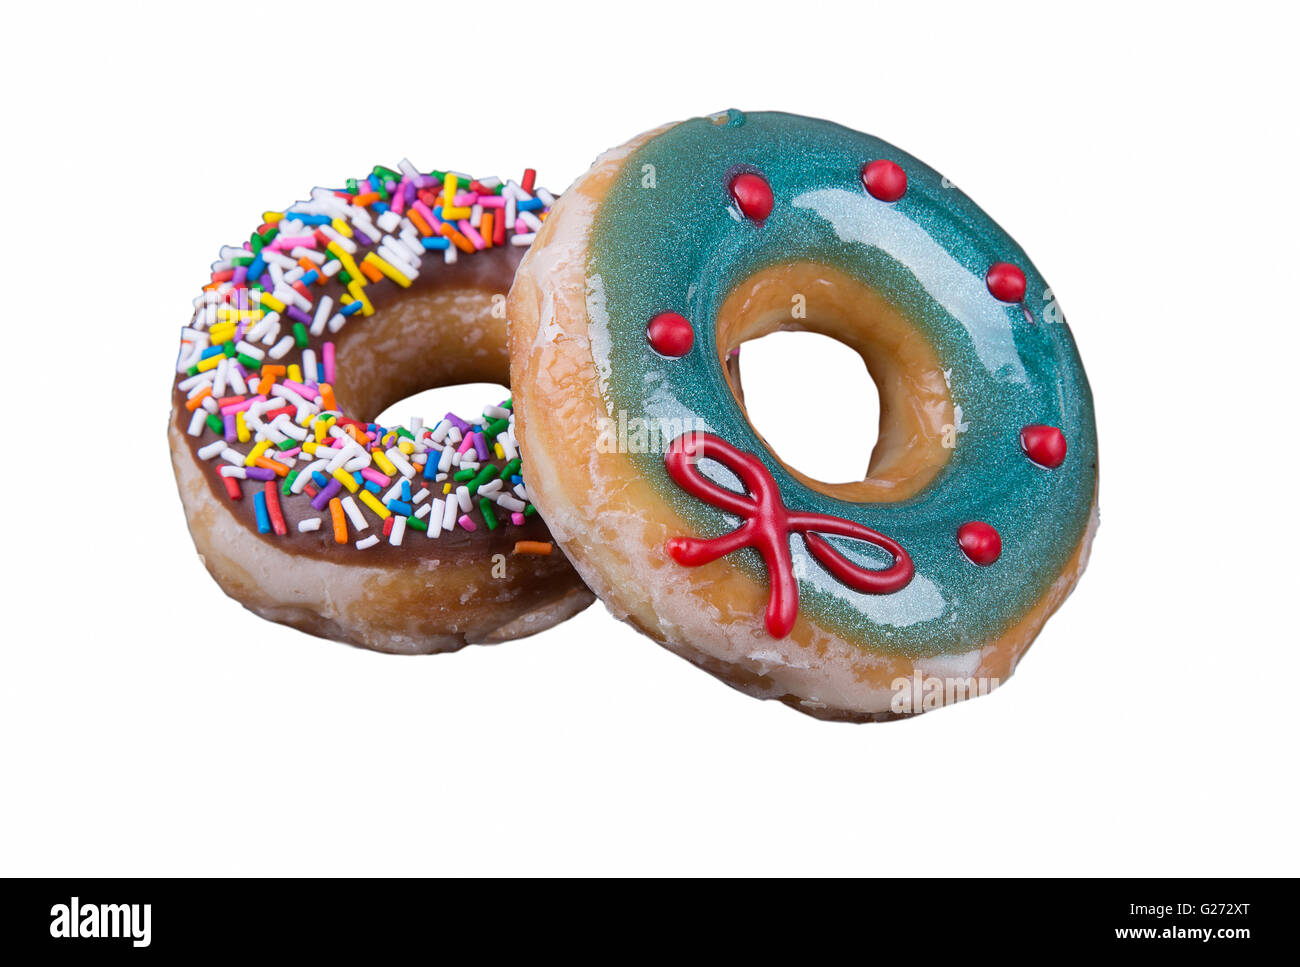 Donut with sprinkles isolated on white background - Stock Image